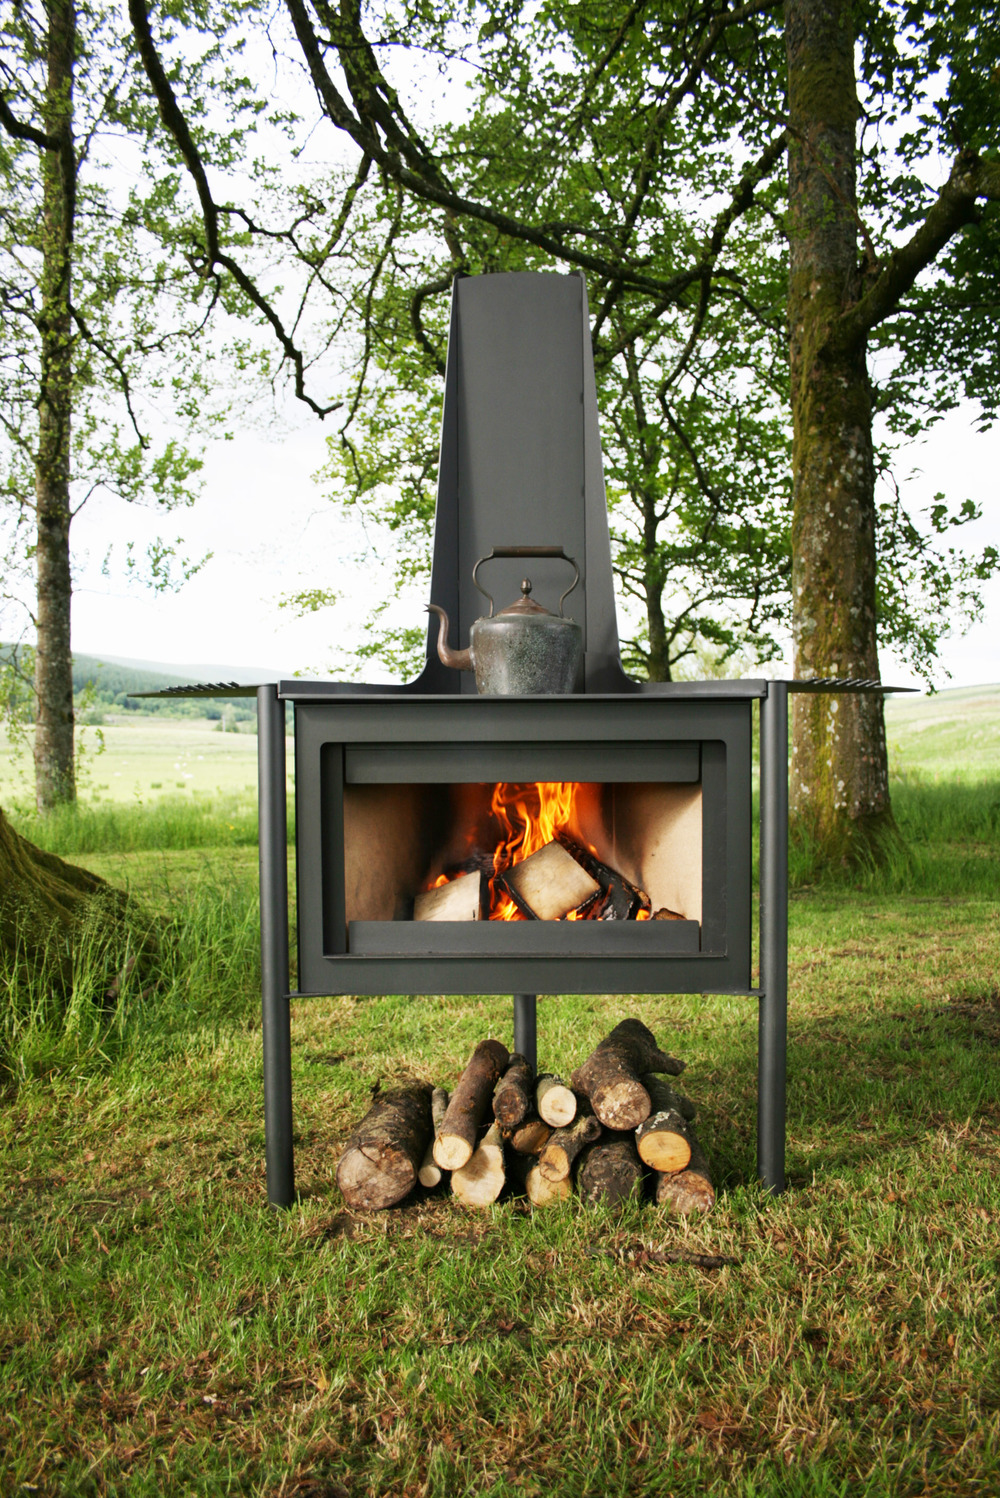 outdoorfirestove.jpg